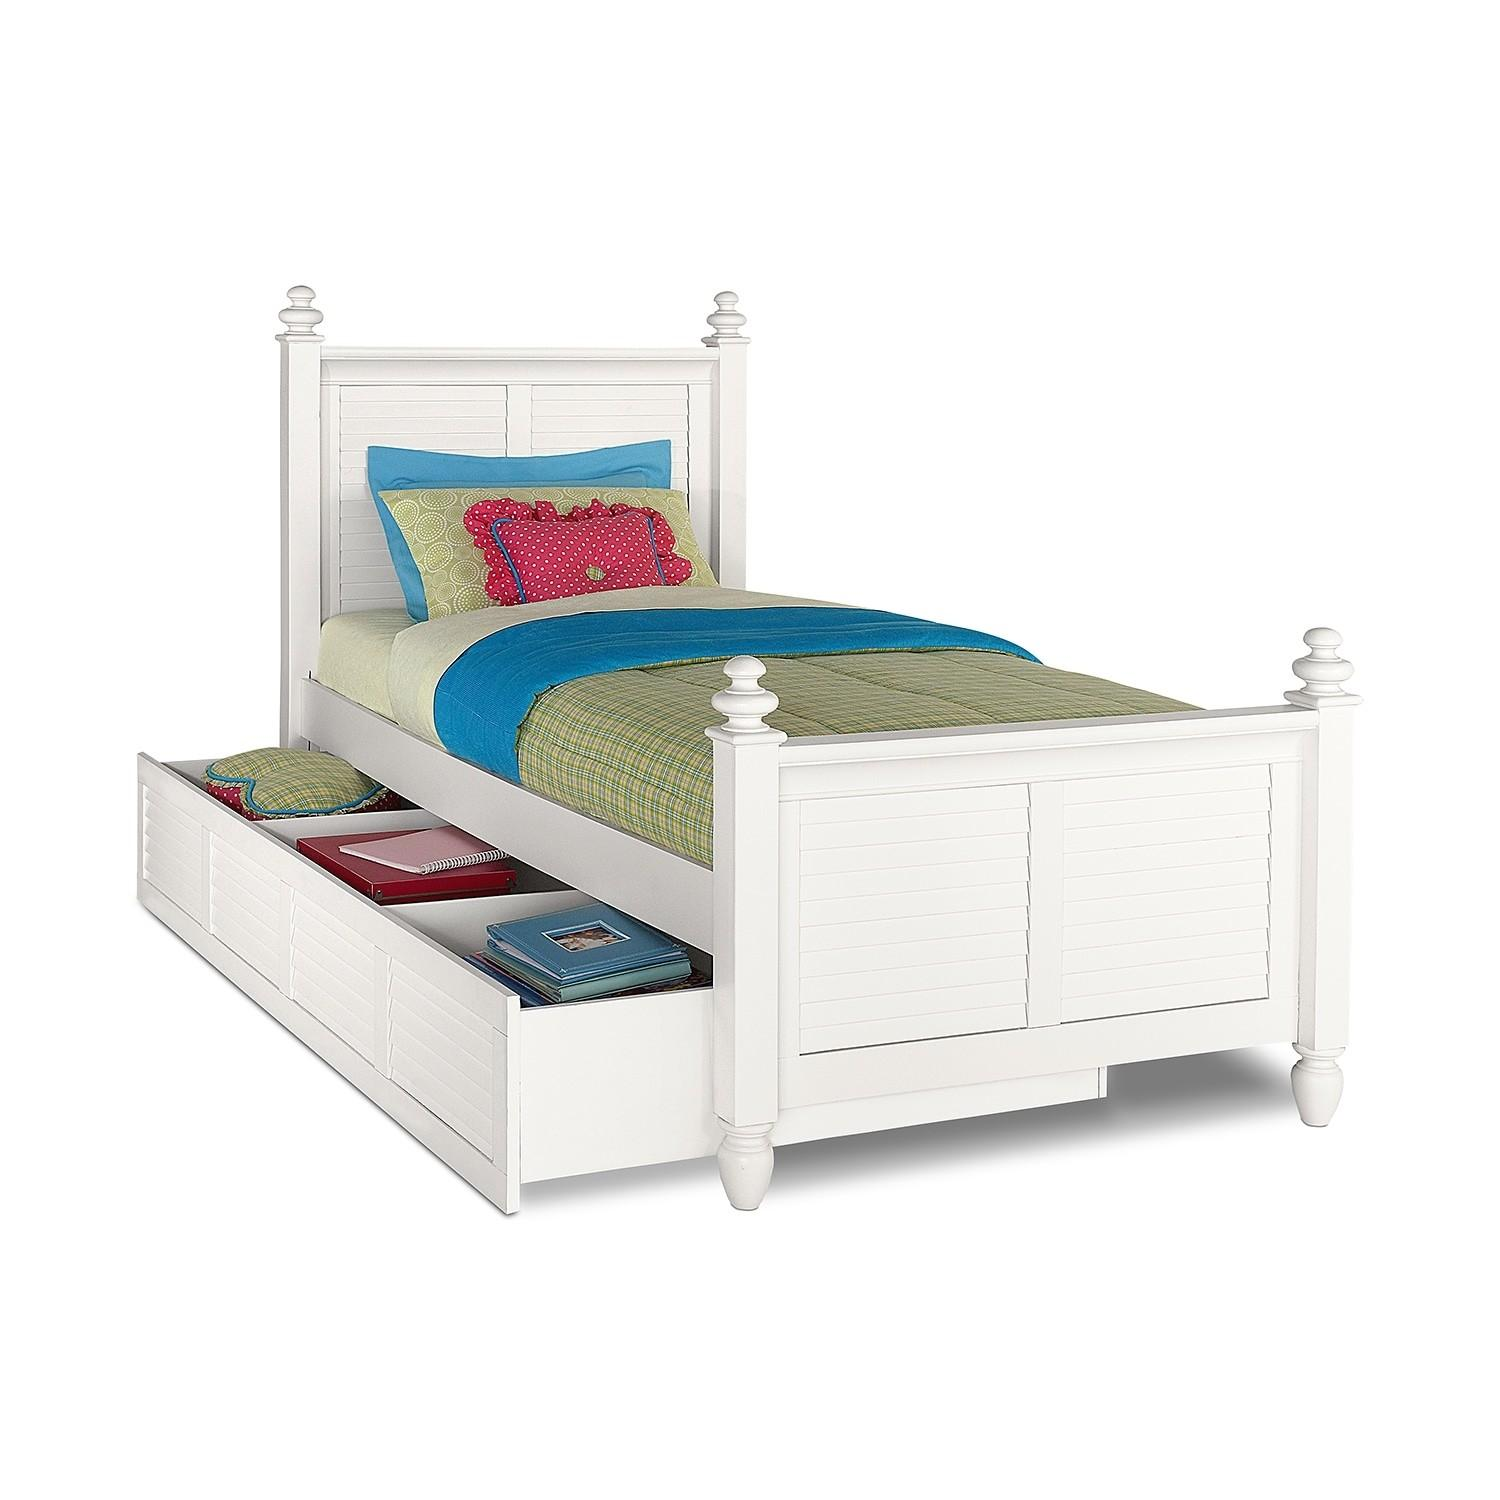 Seaside Twin Bed Trundle White Value City Furniture